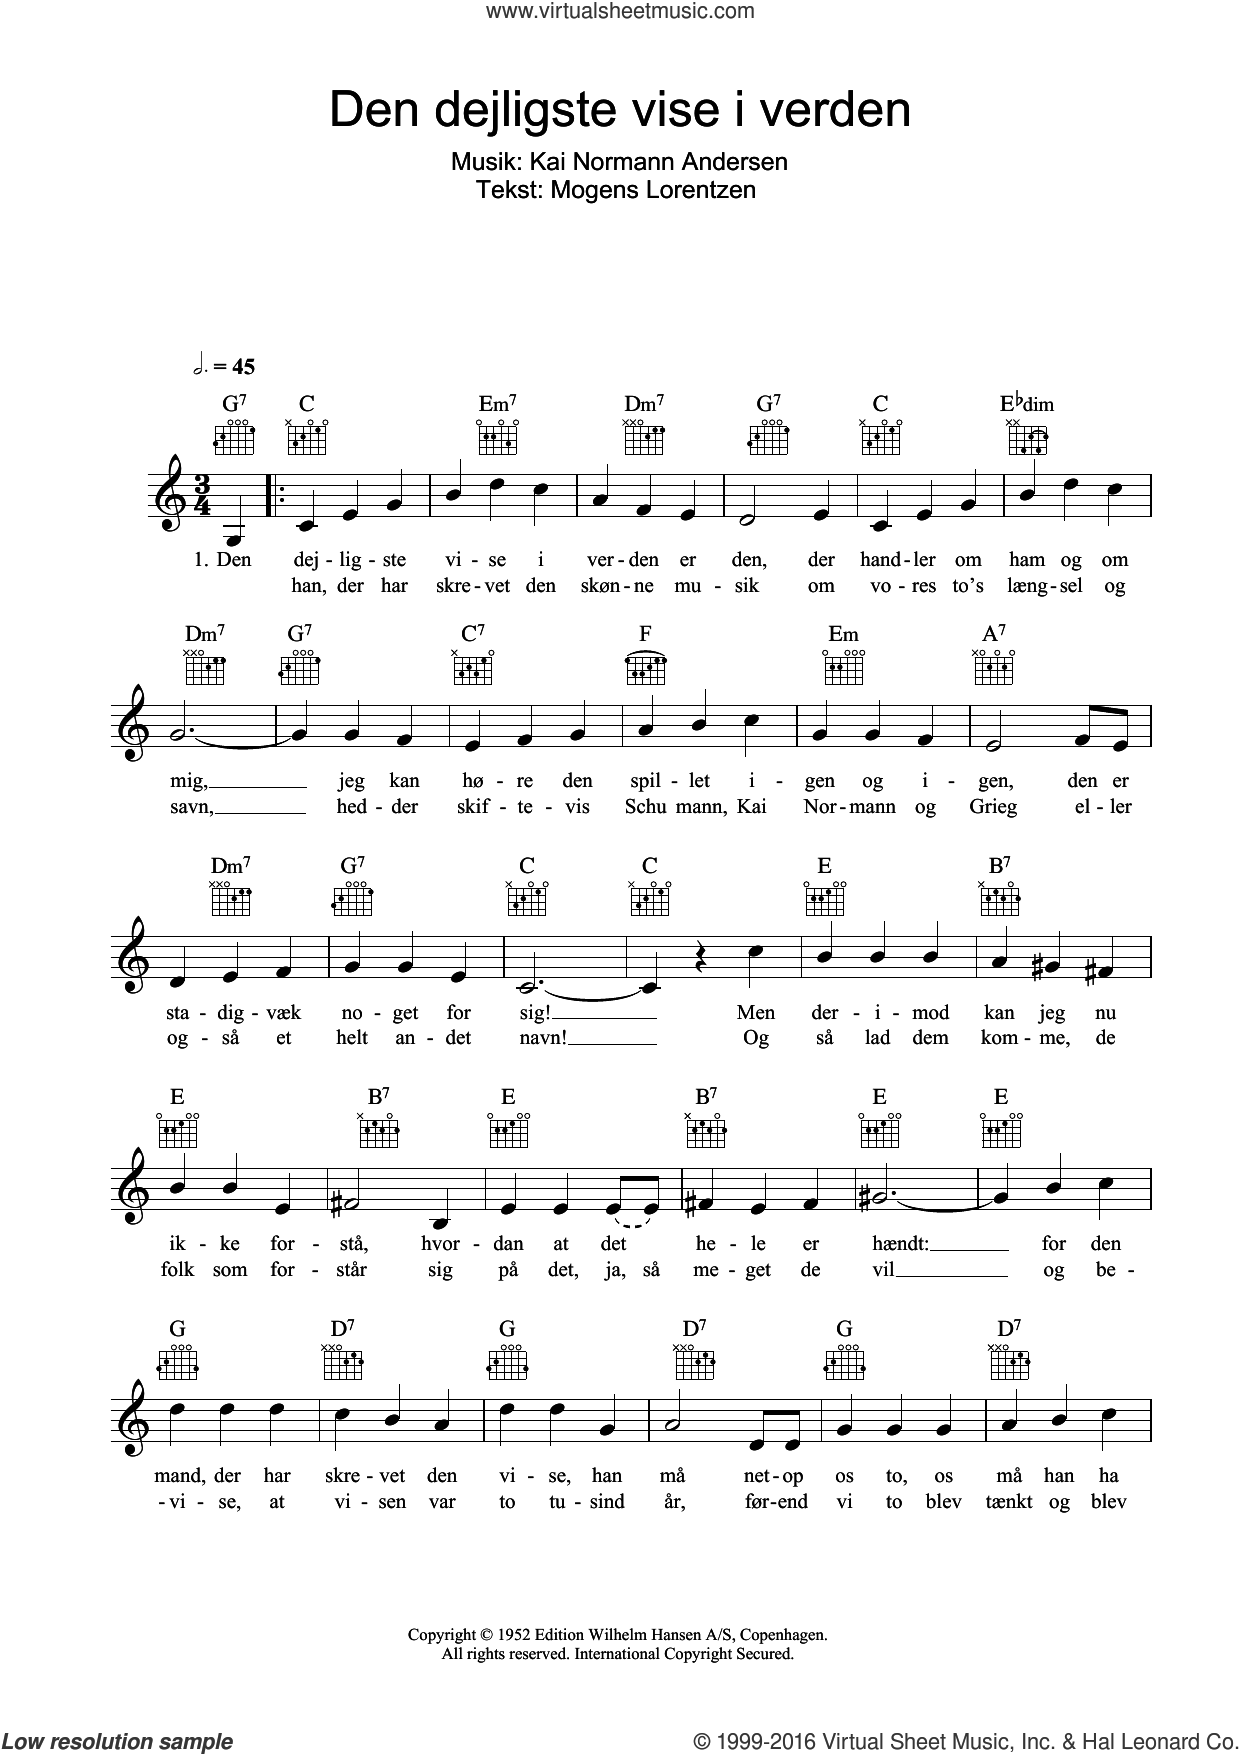 Den Dejligste Vise I Verden sheet music for voice and other instruments (fake book) by Kai Normann Andersen and Mogens Lorentzen, intermediate. Score Image Preview.